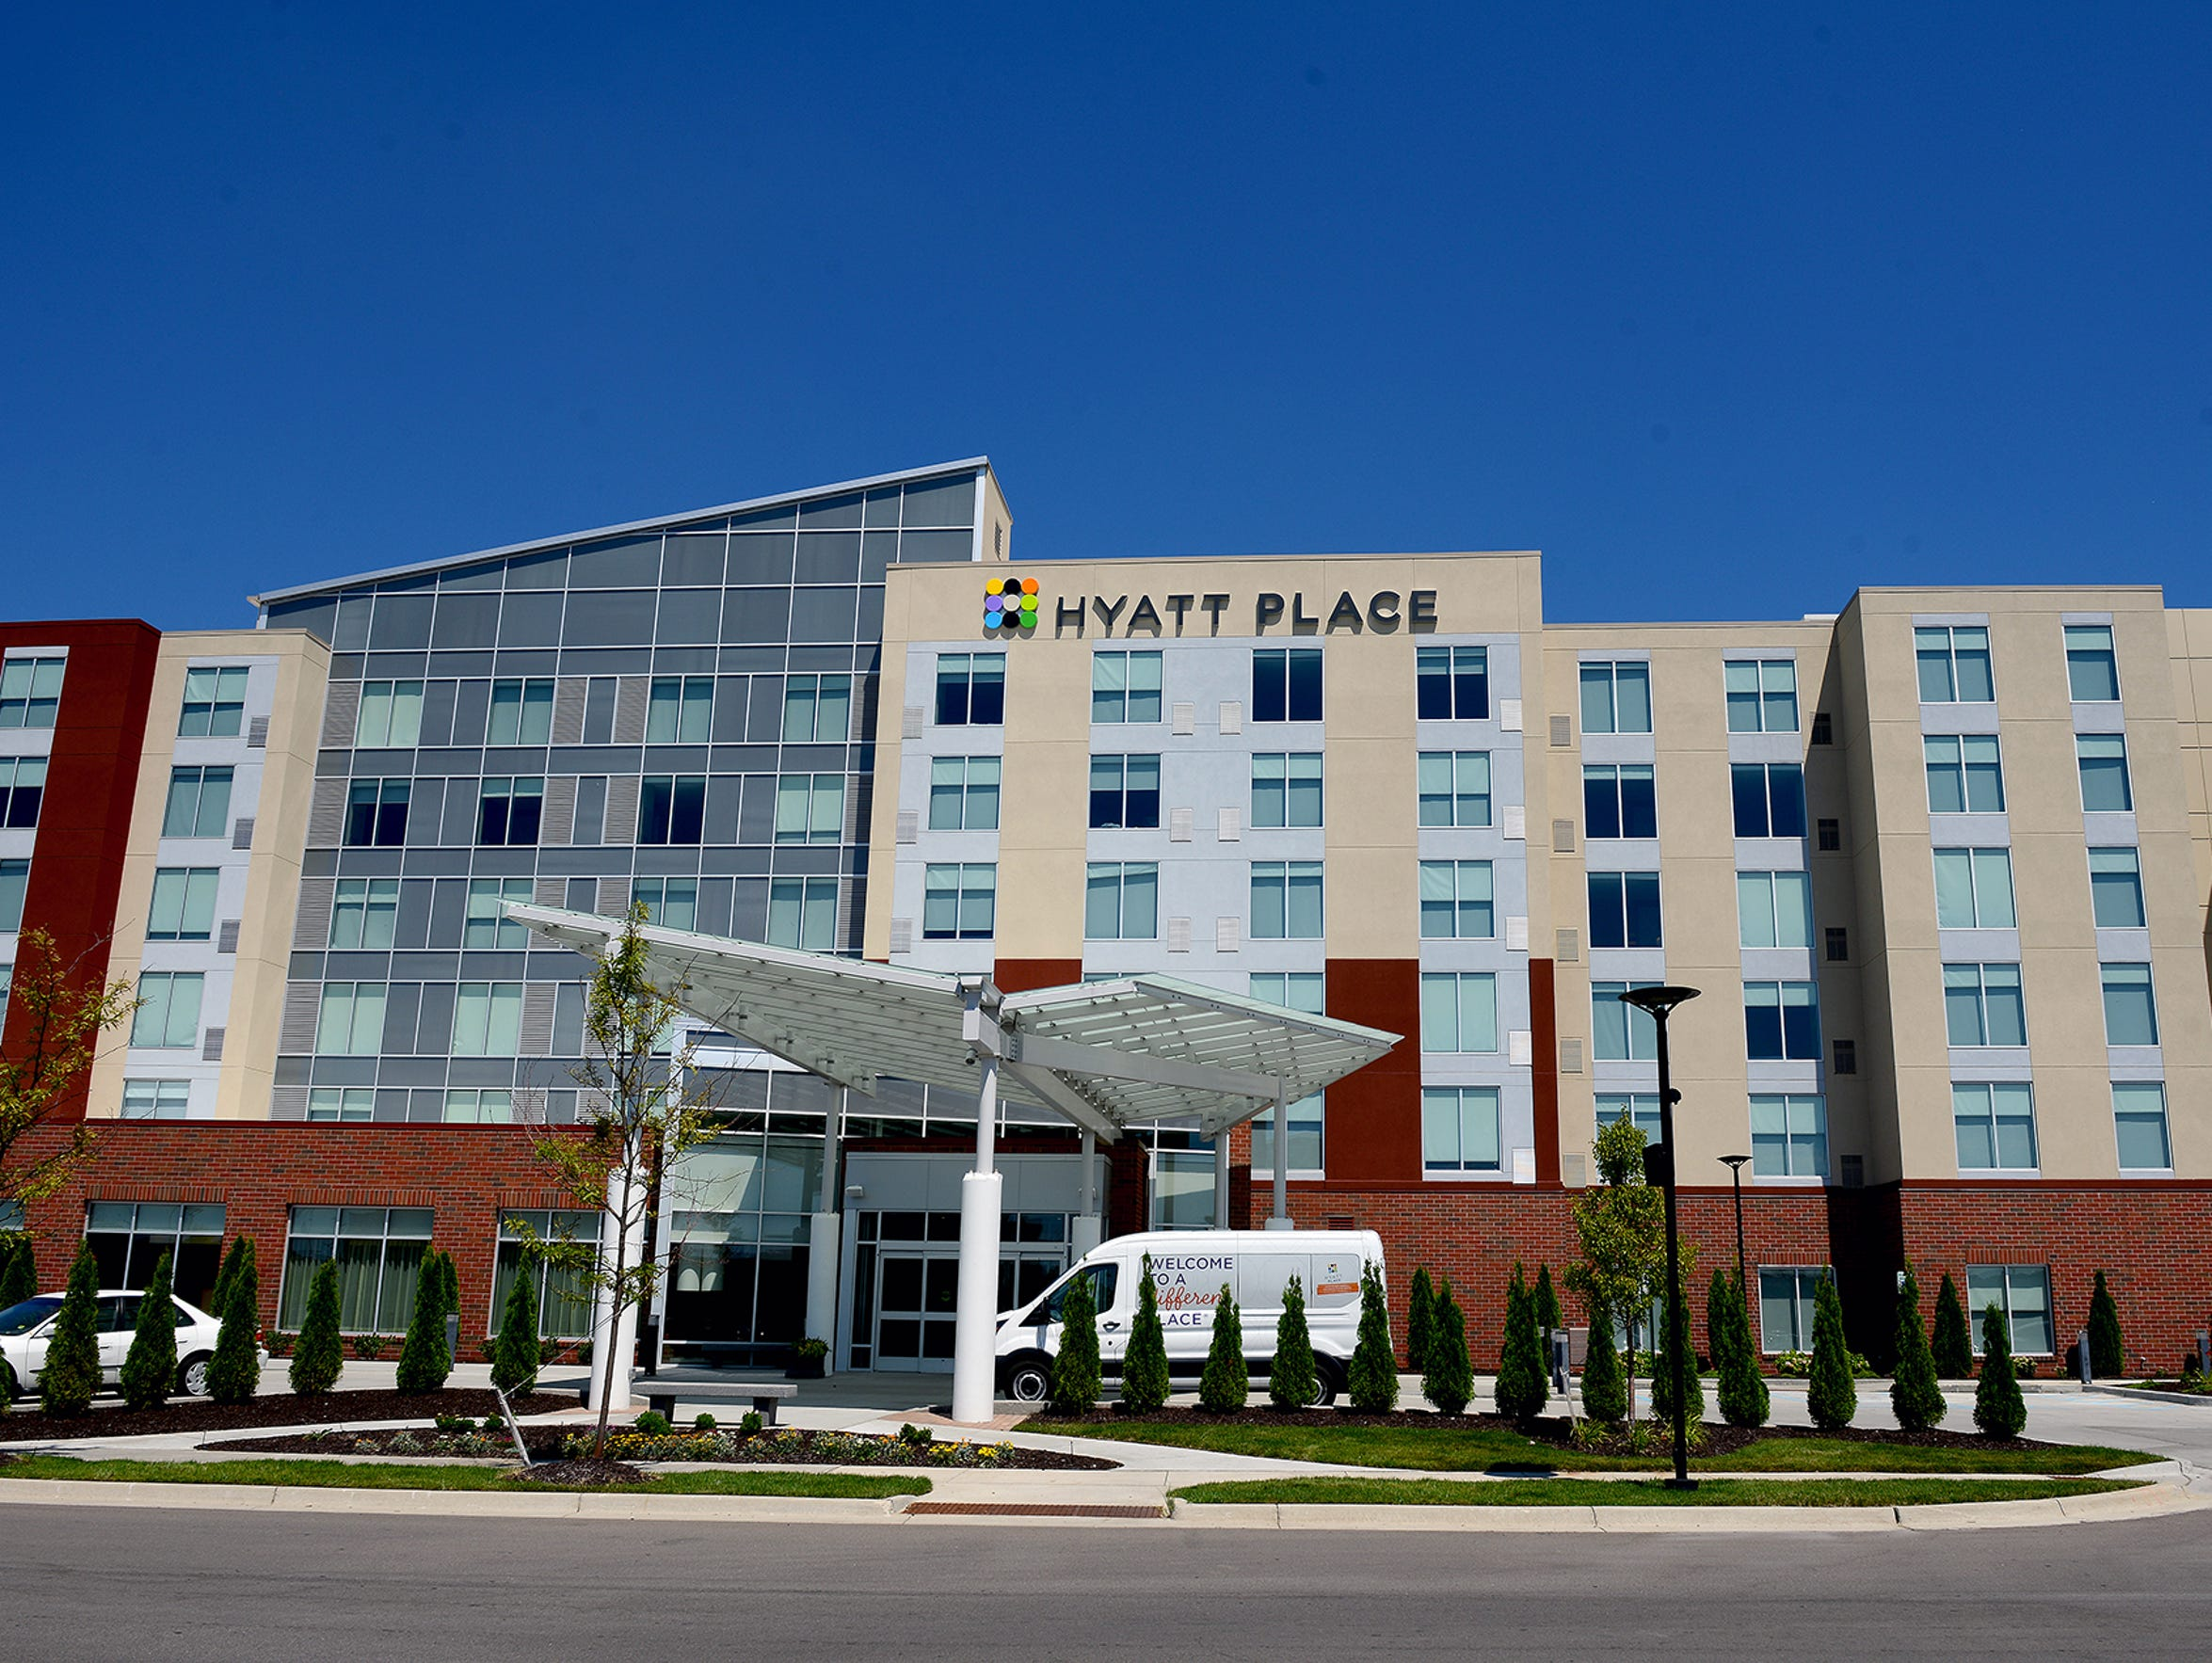 The 128-room Hyatt Place hotel opened in May 2015 at